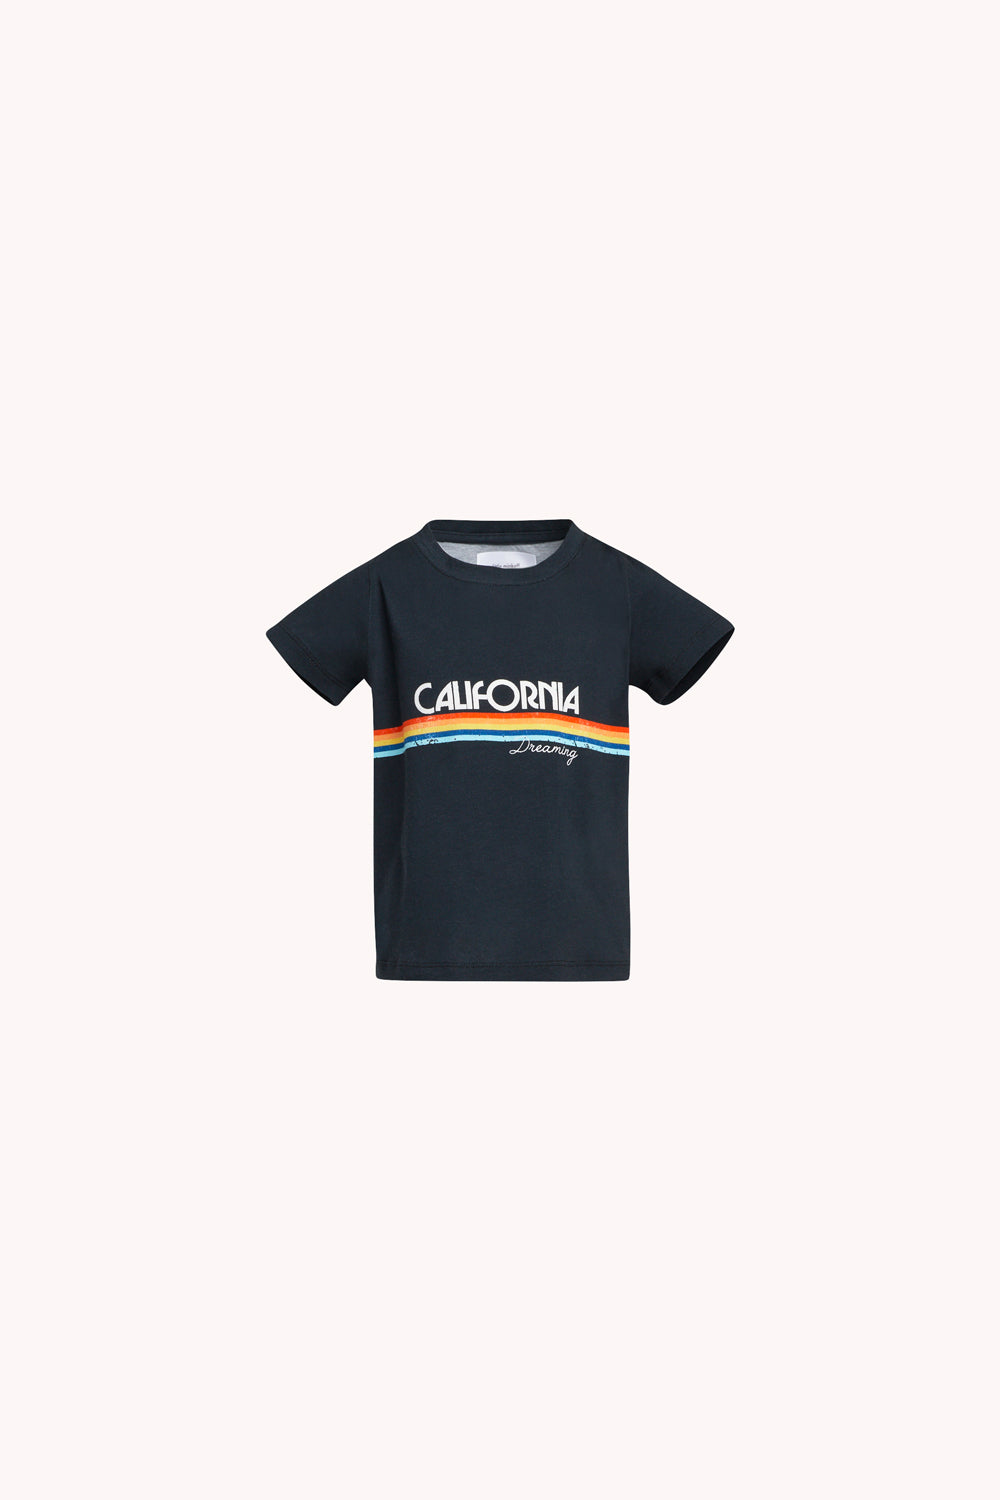 Cali Retro T | Black